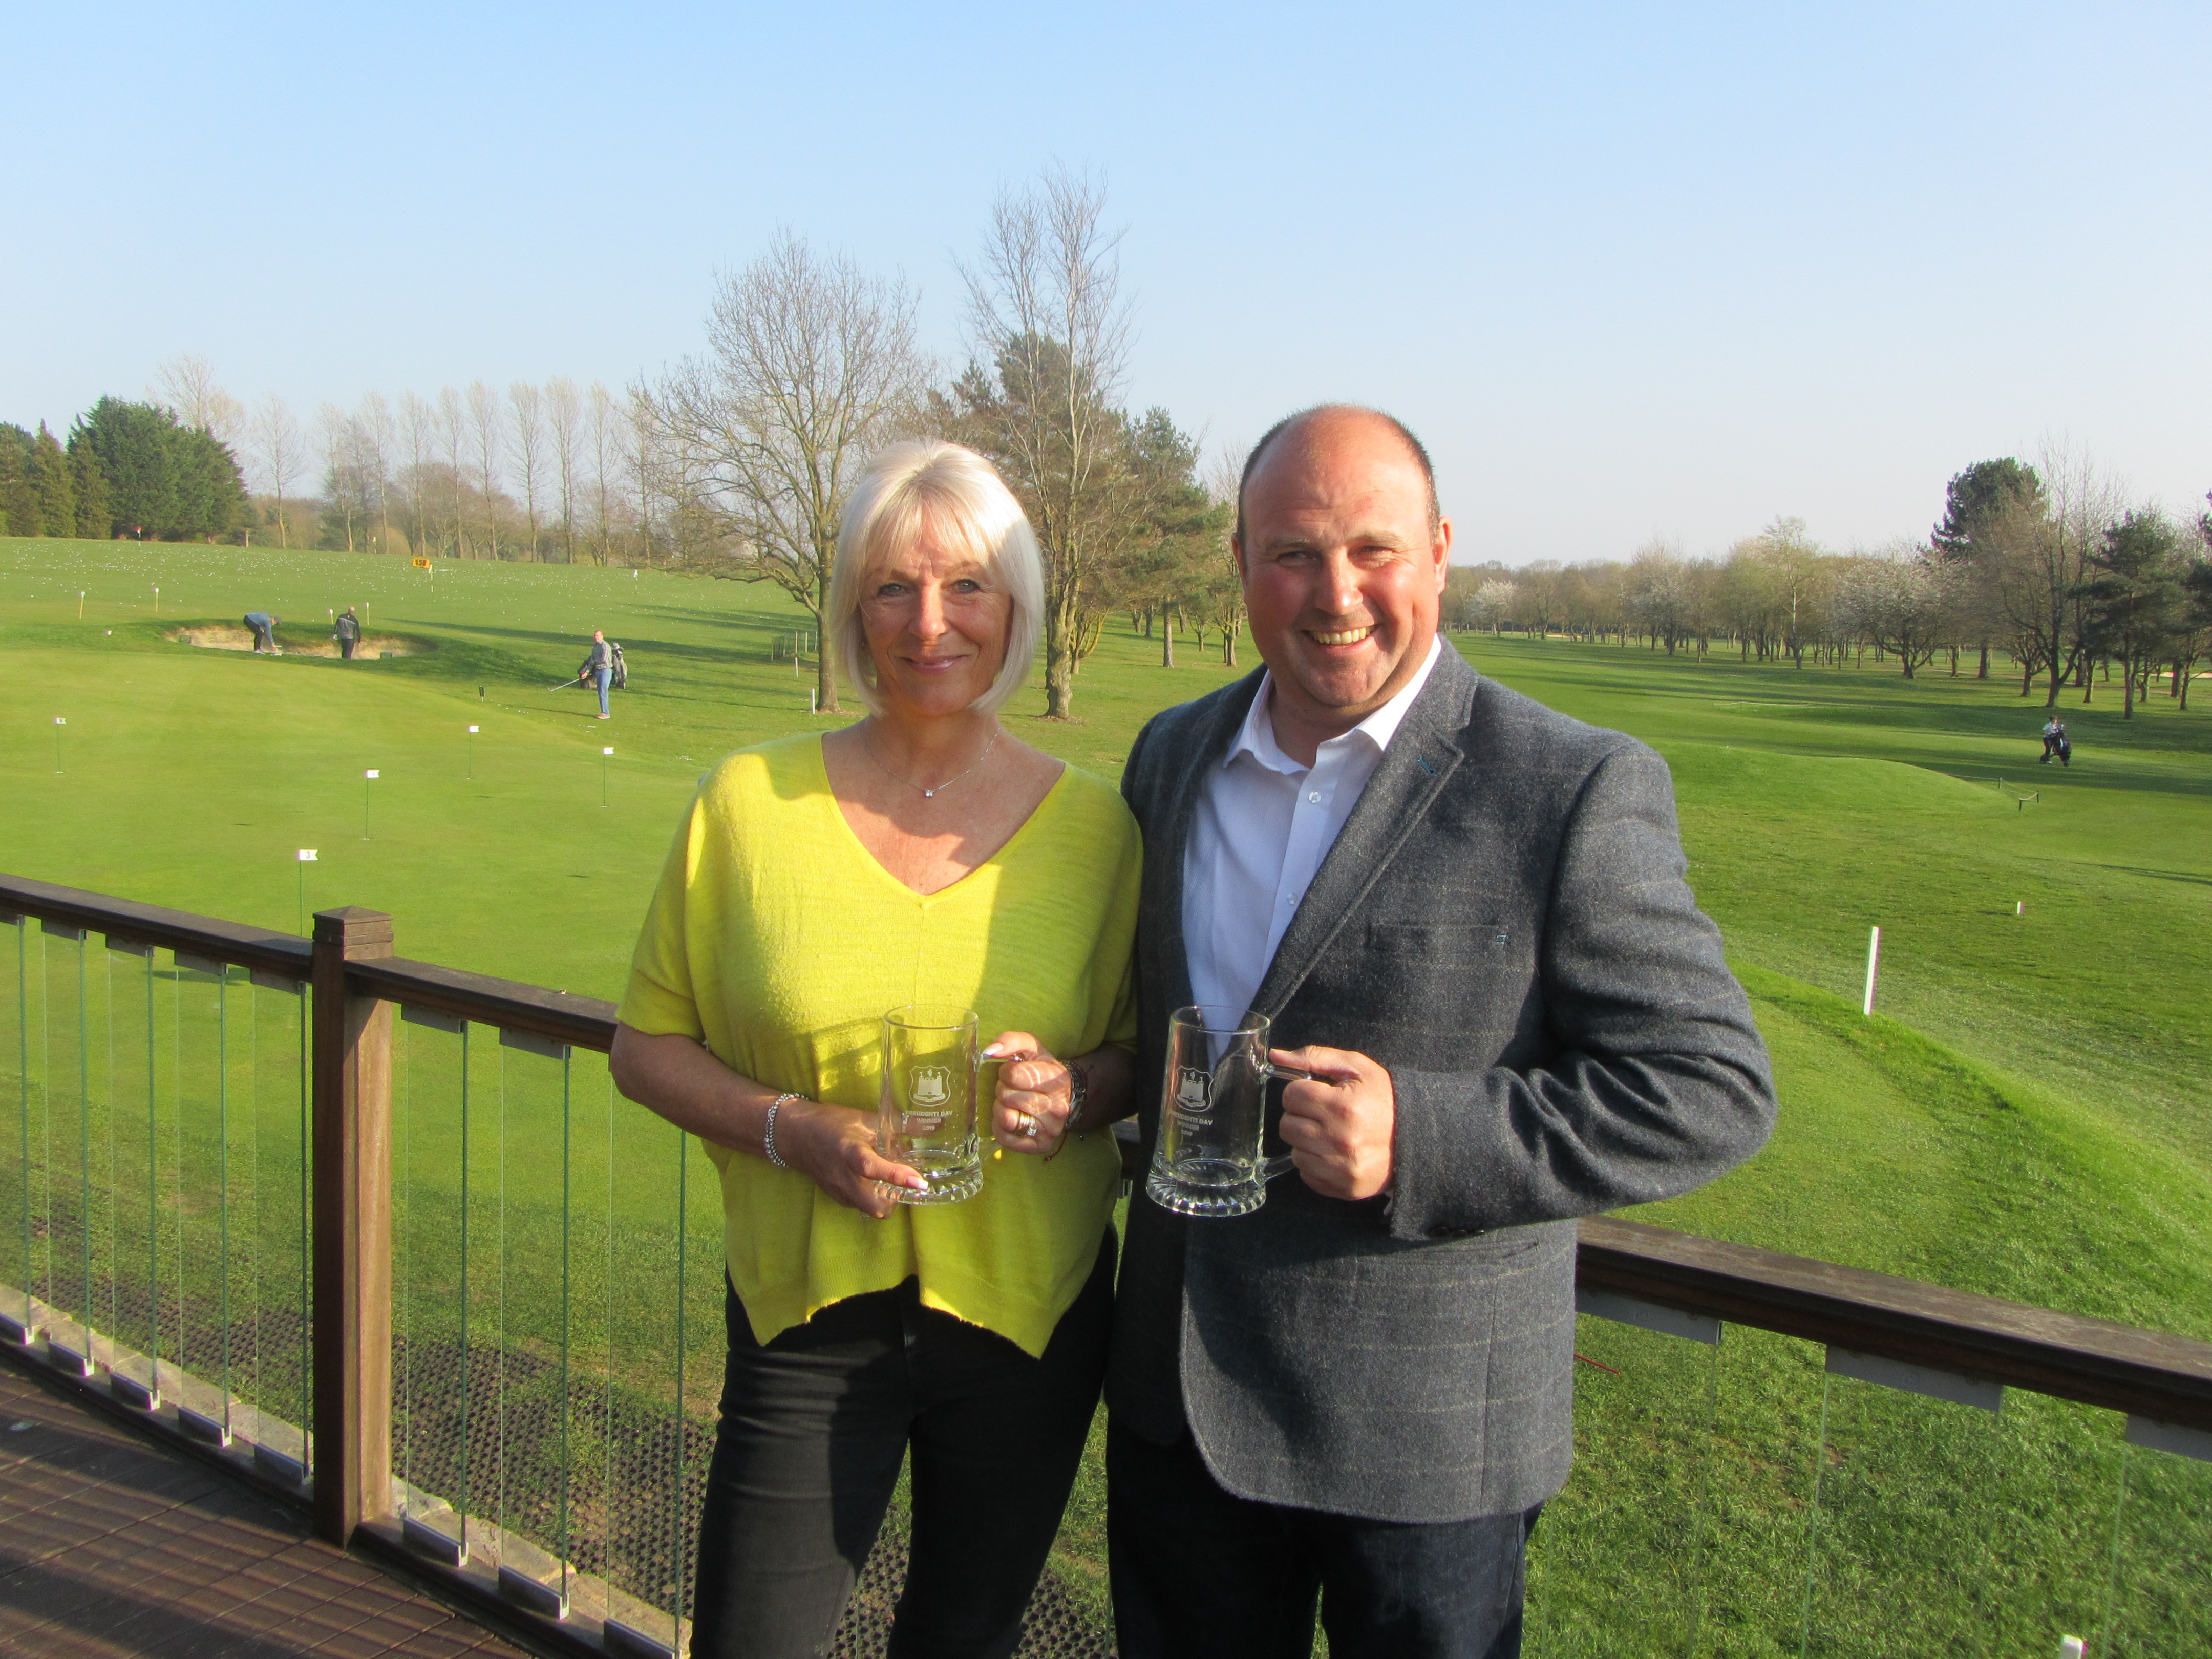 Rhys Nightingale and Andrea Leigh - 43 Points in the SGU Presidents Day Stableford